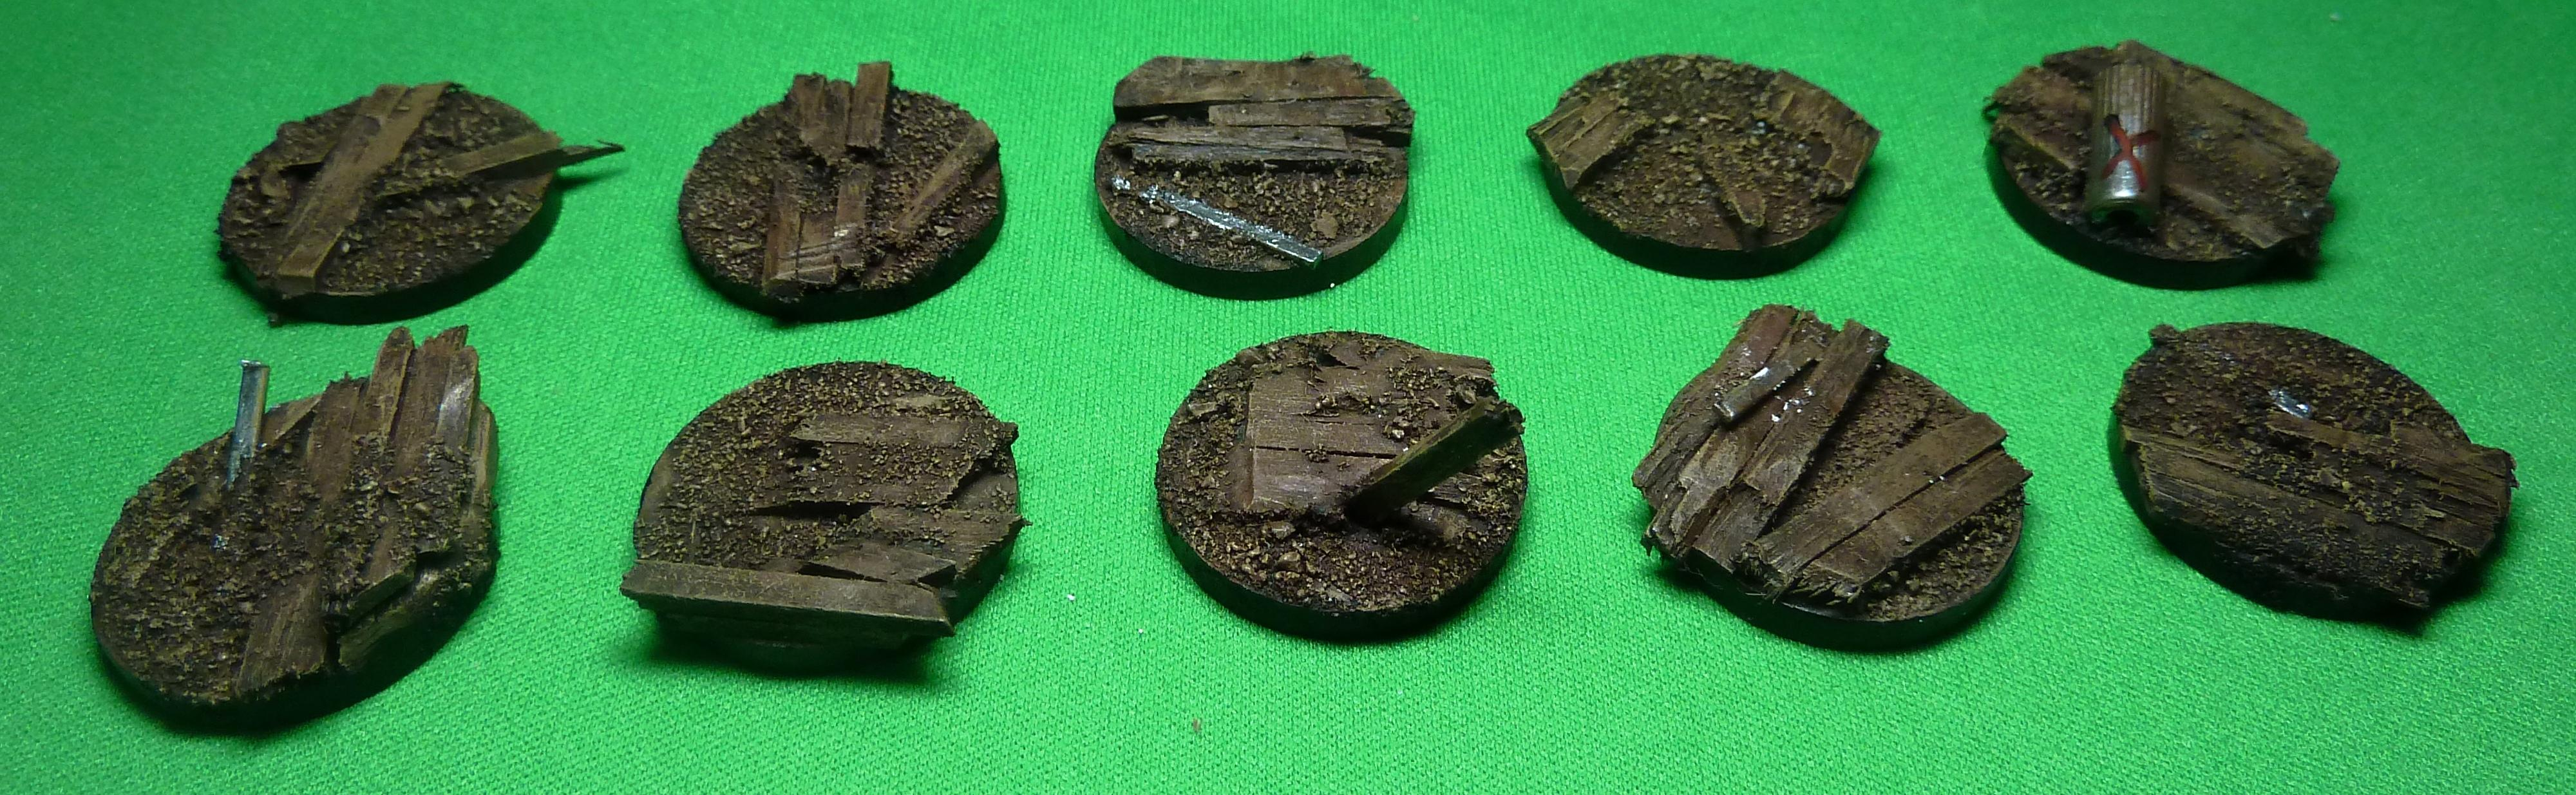 Muddy Trench Bases